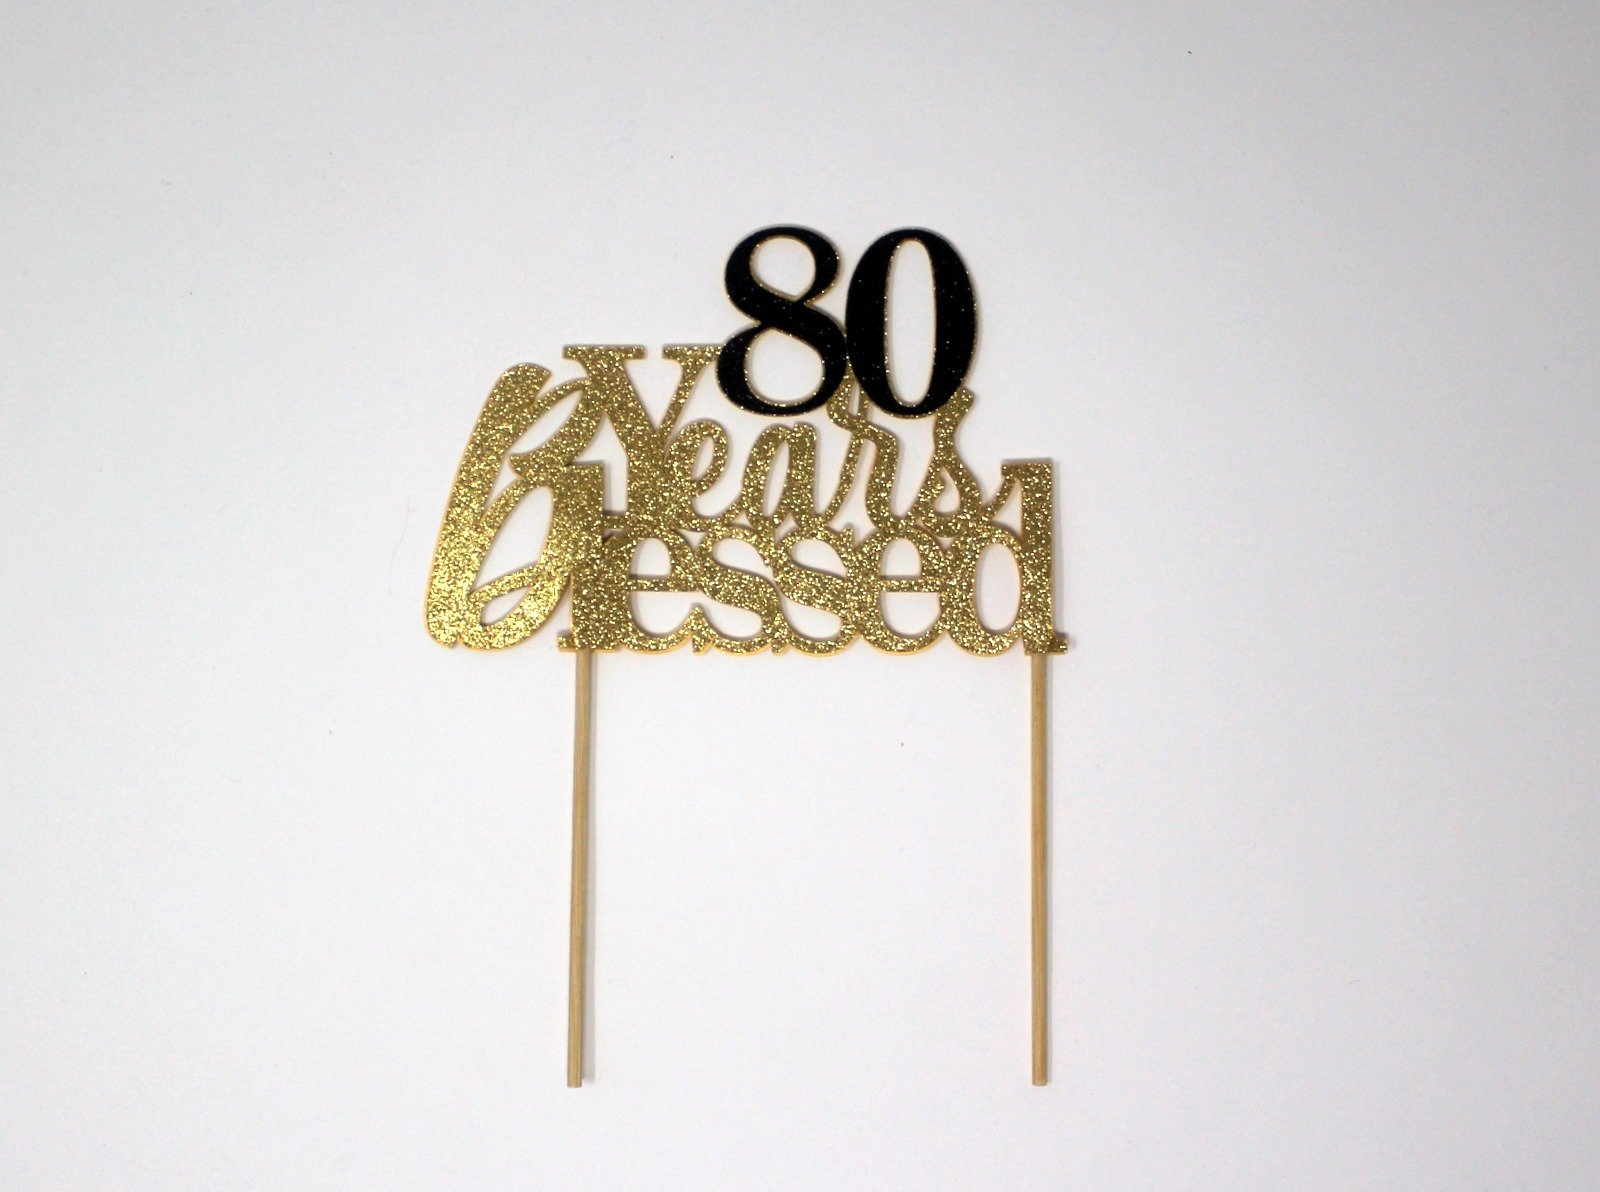 All About Details 80 Years Blessed Cake Topper, 1PC, 80th Birthday, Party Decor, Glitter Gold (Gold & Black)